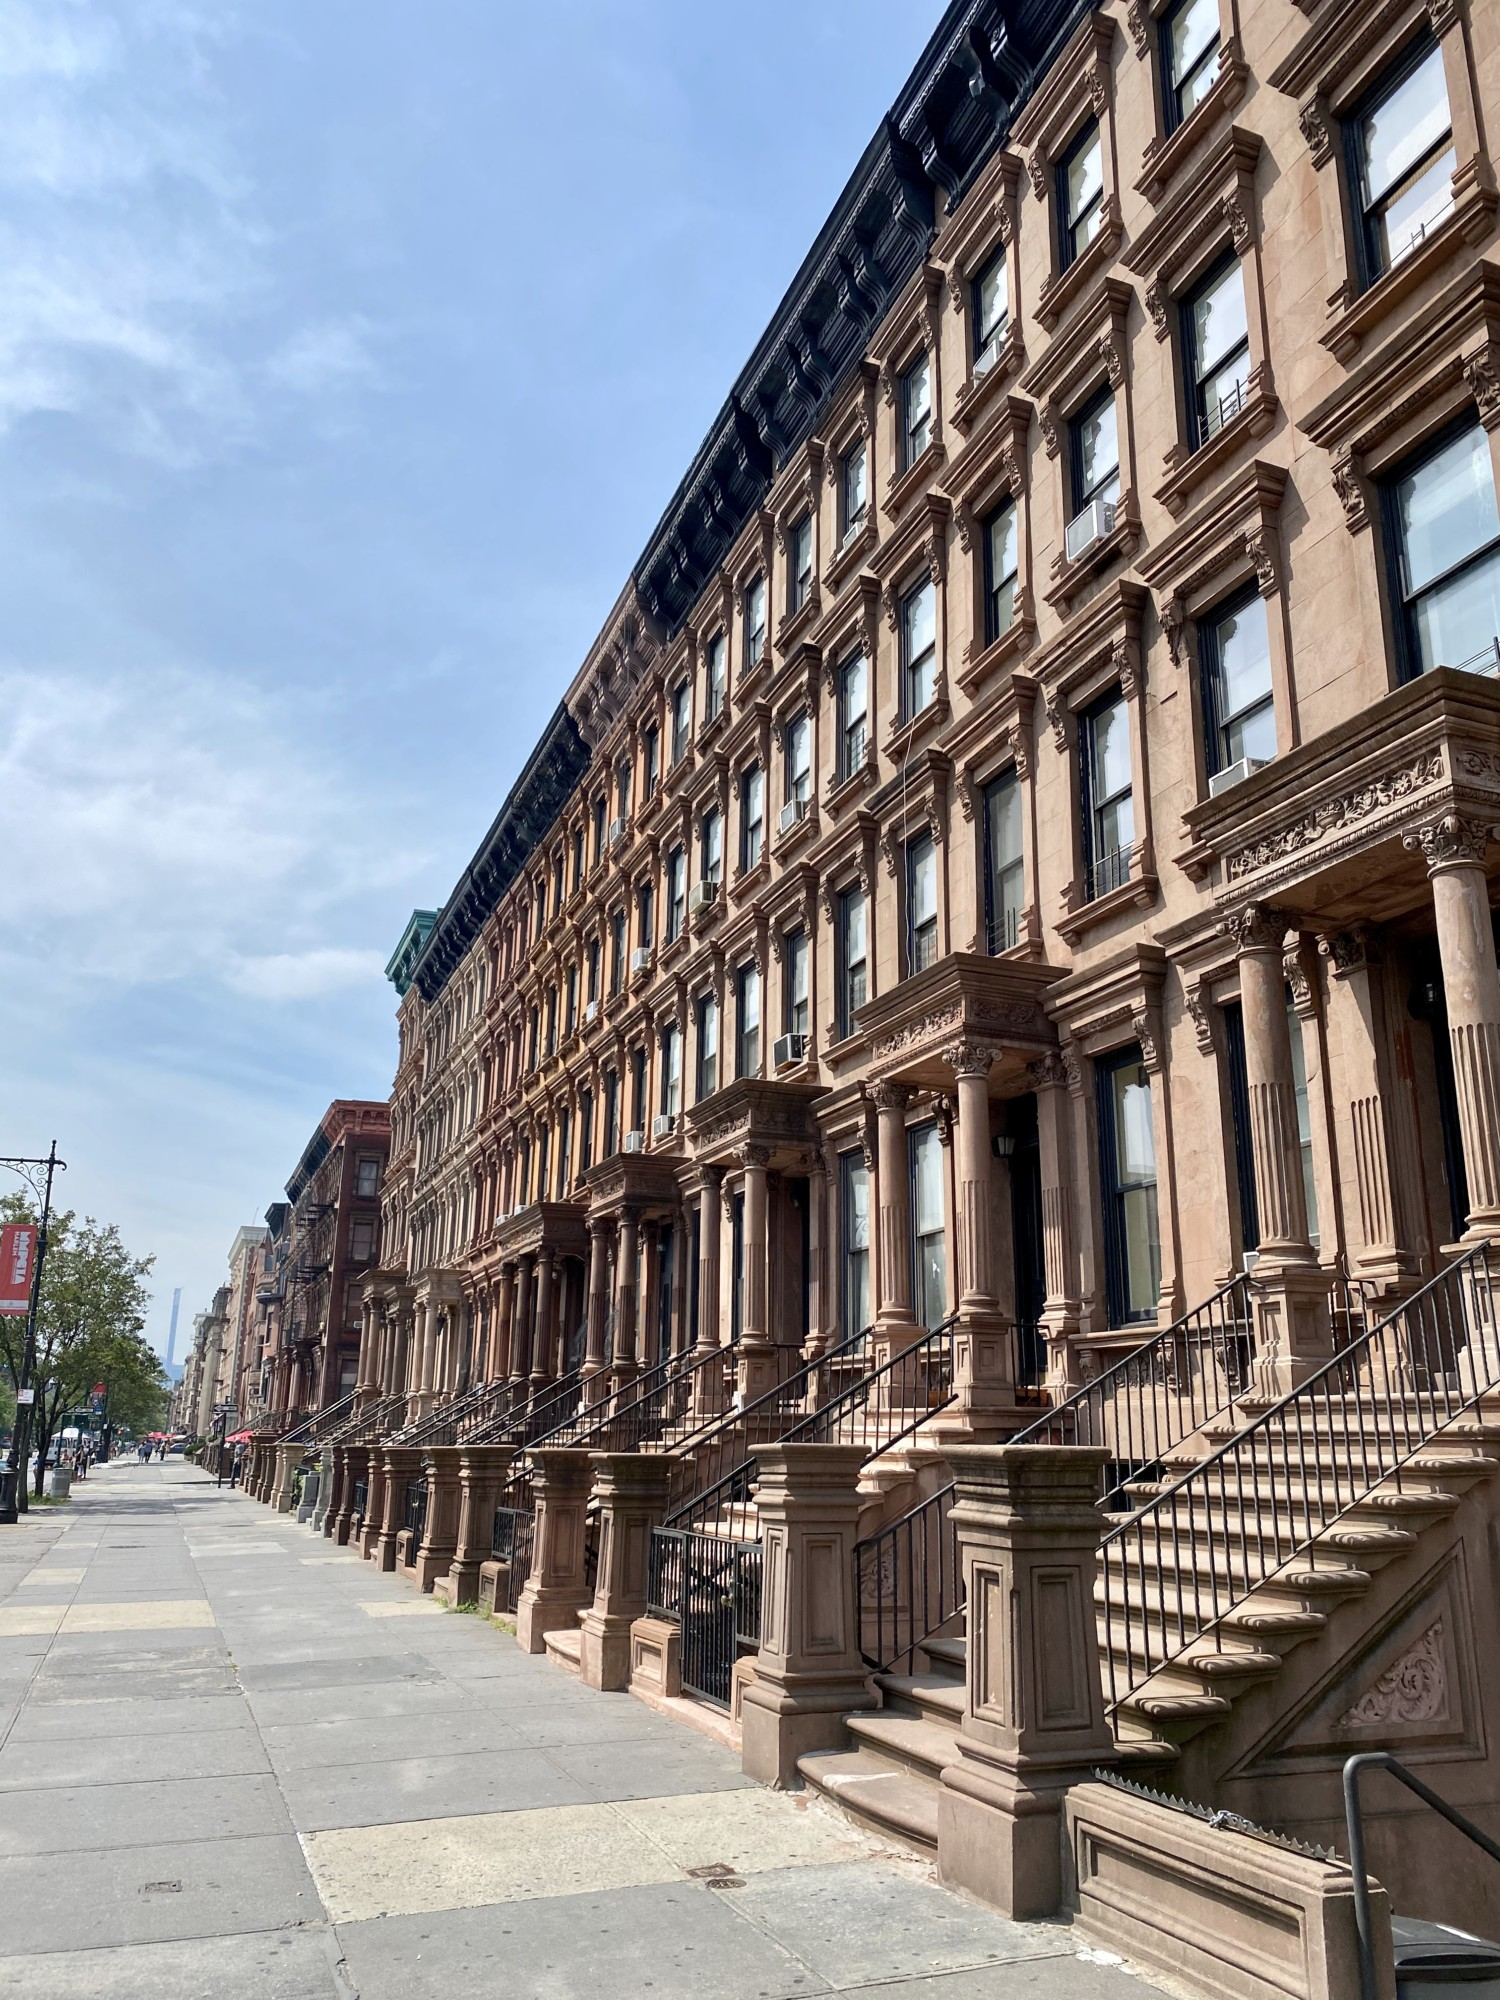 NYC Architectural Terms and Features